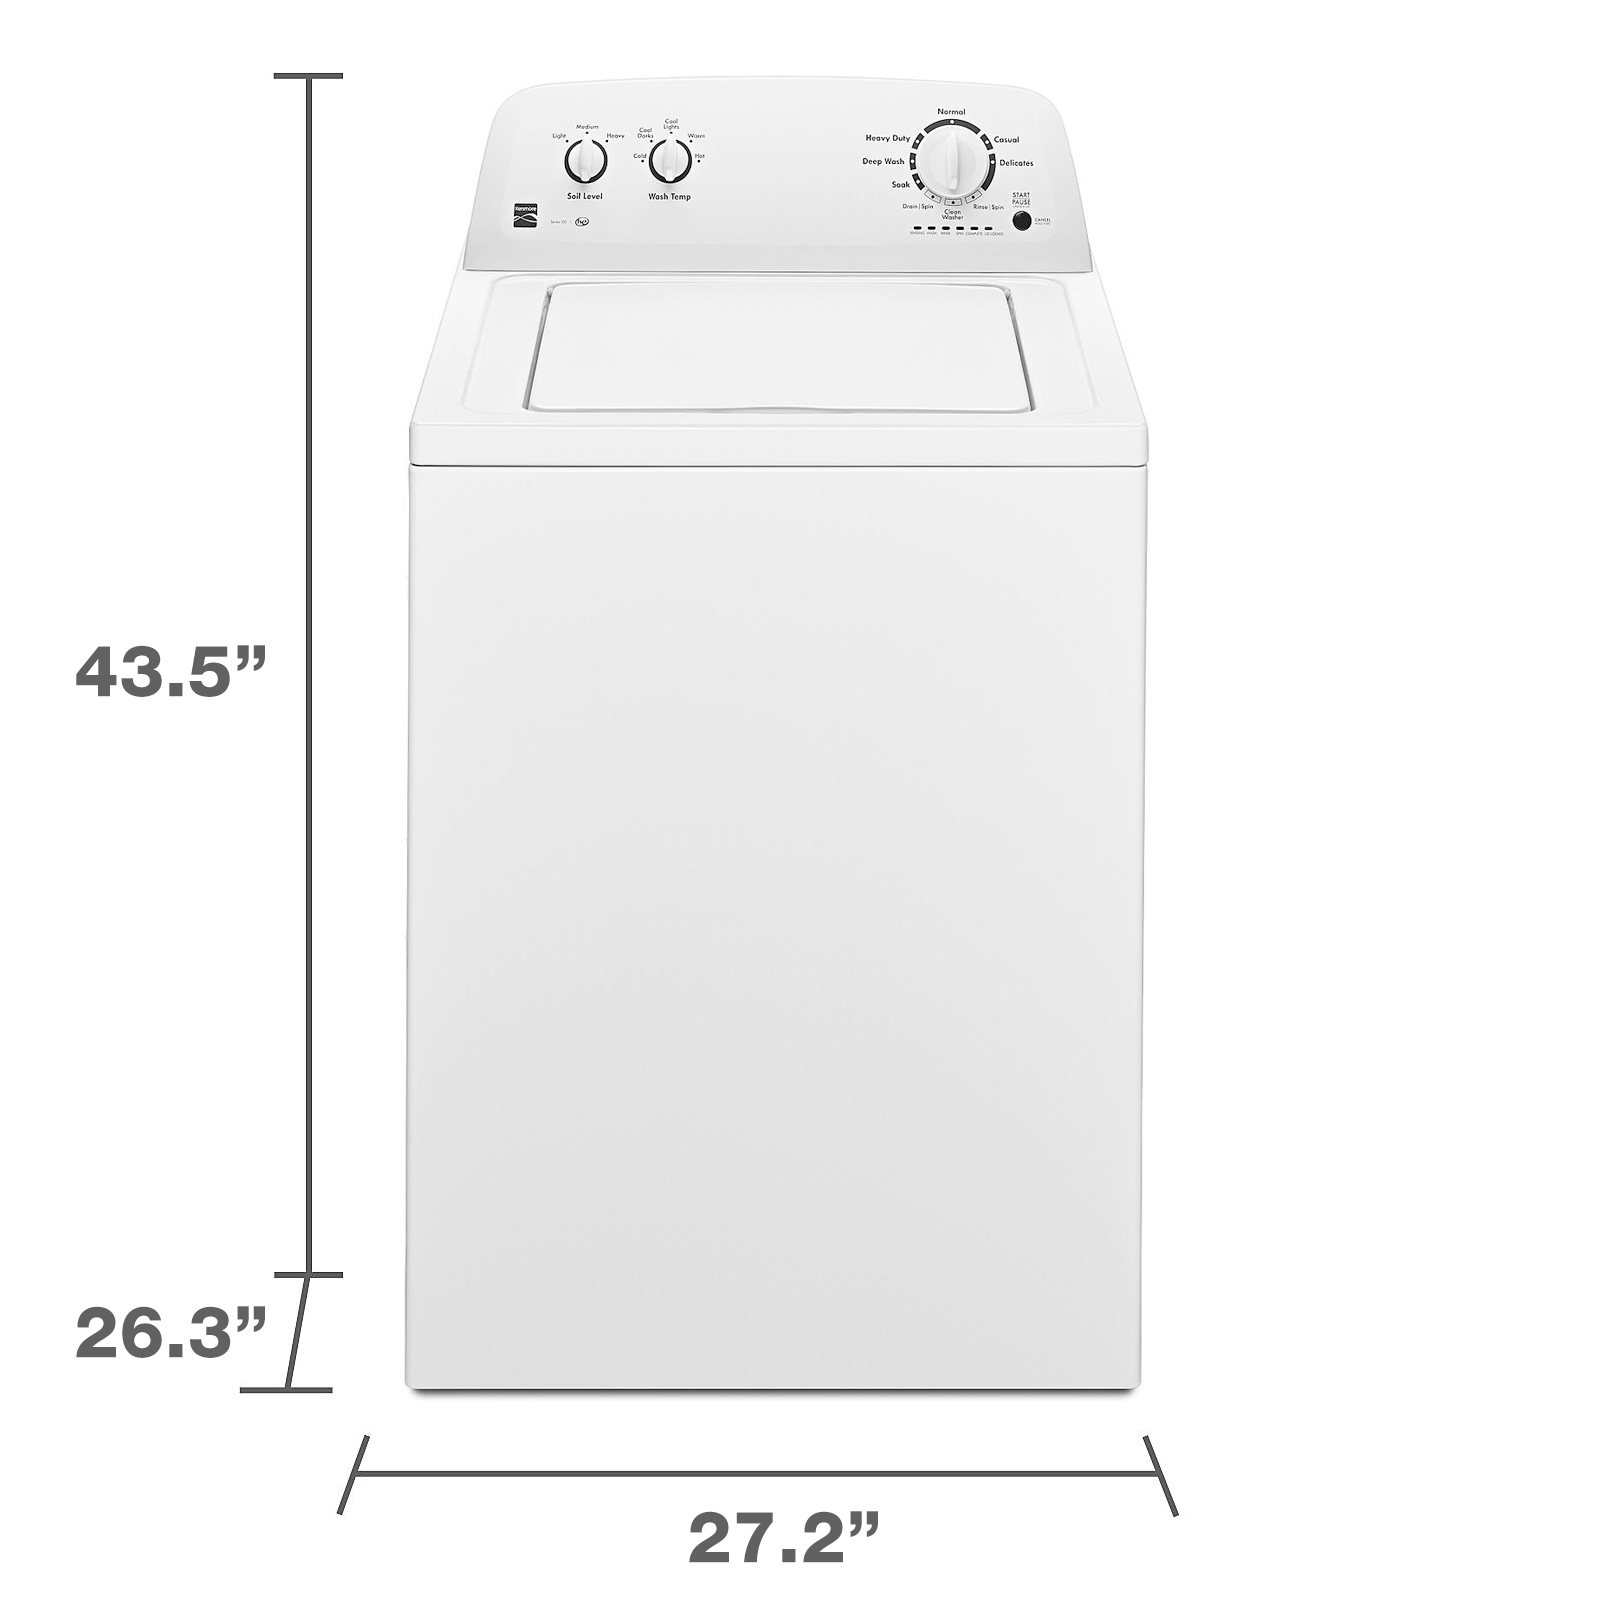 Kenmore 20222 3.3 cu. ft. Top Load Washer - White